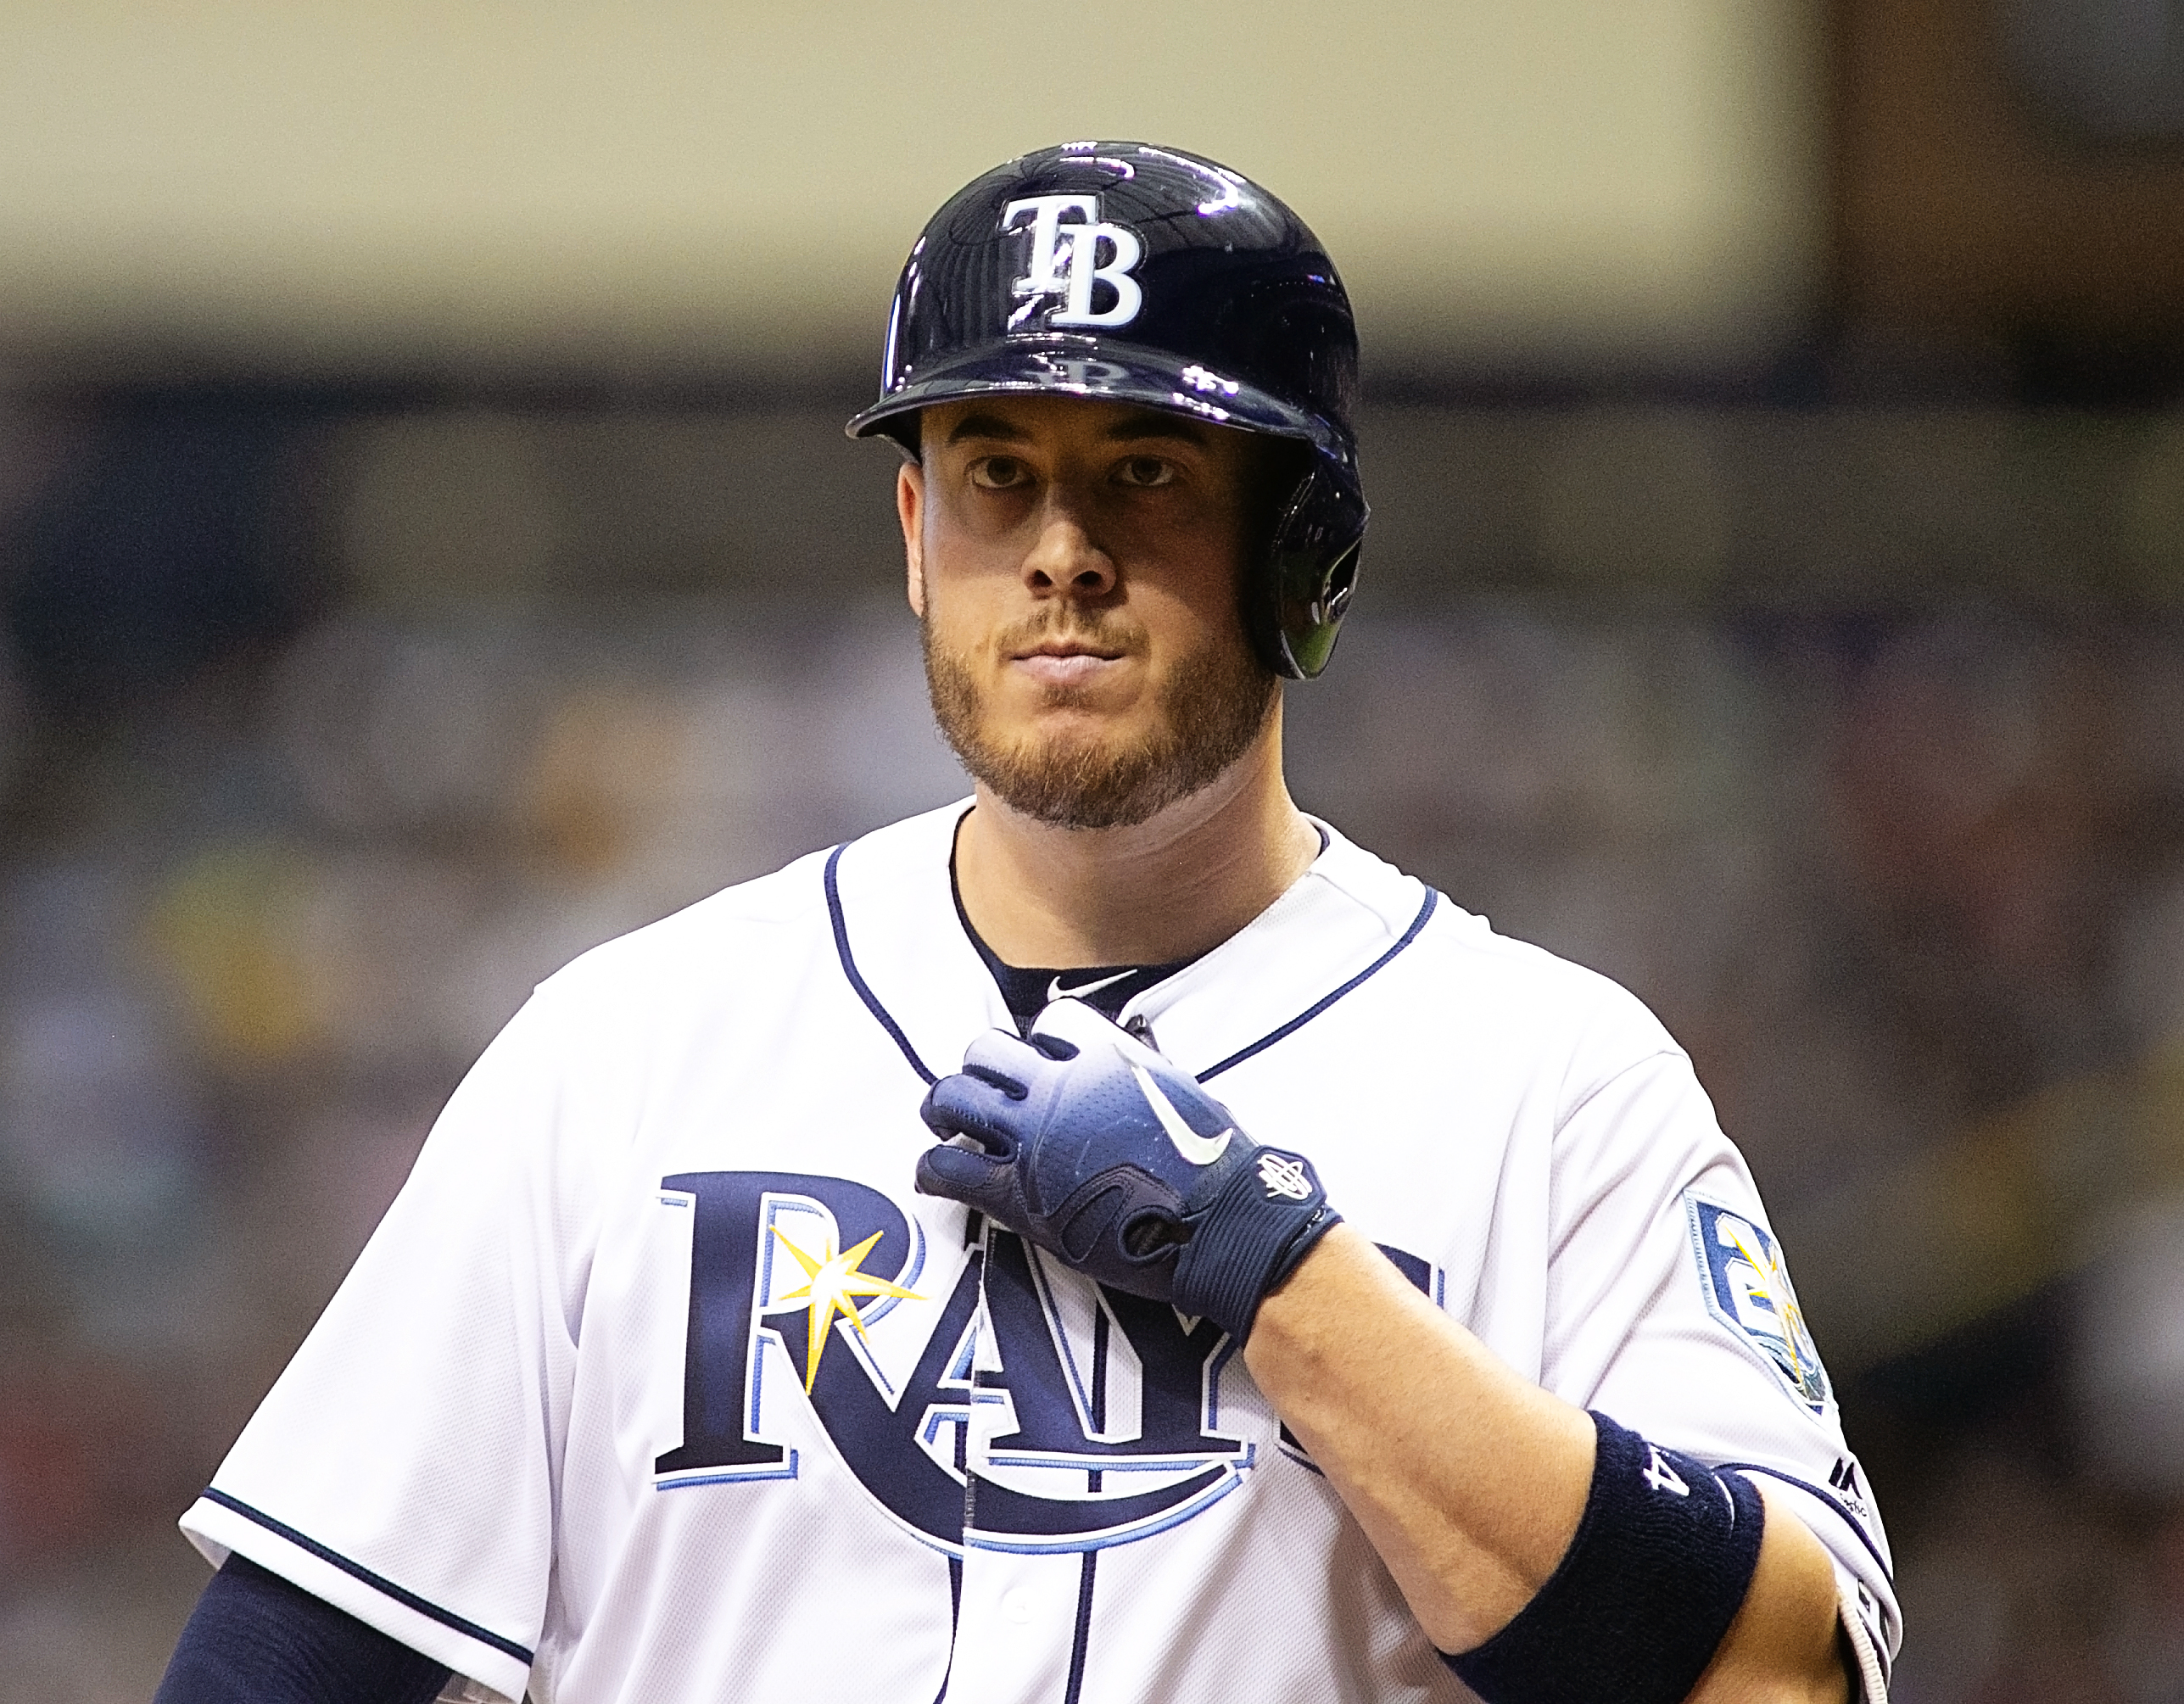 Cron hit is first home run as a Ray./CARMEN MANDATO